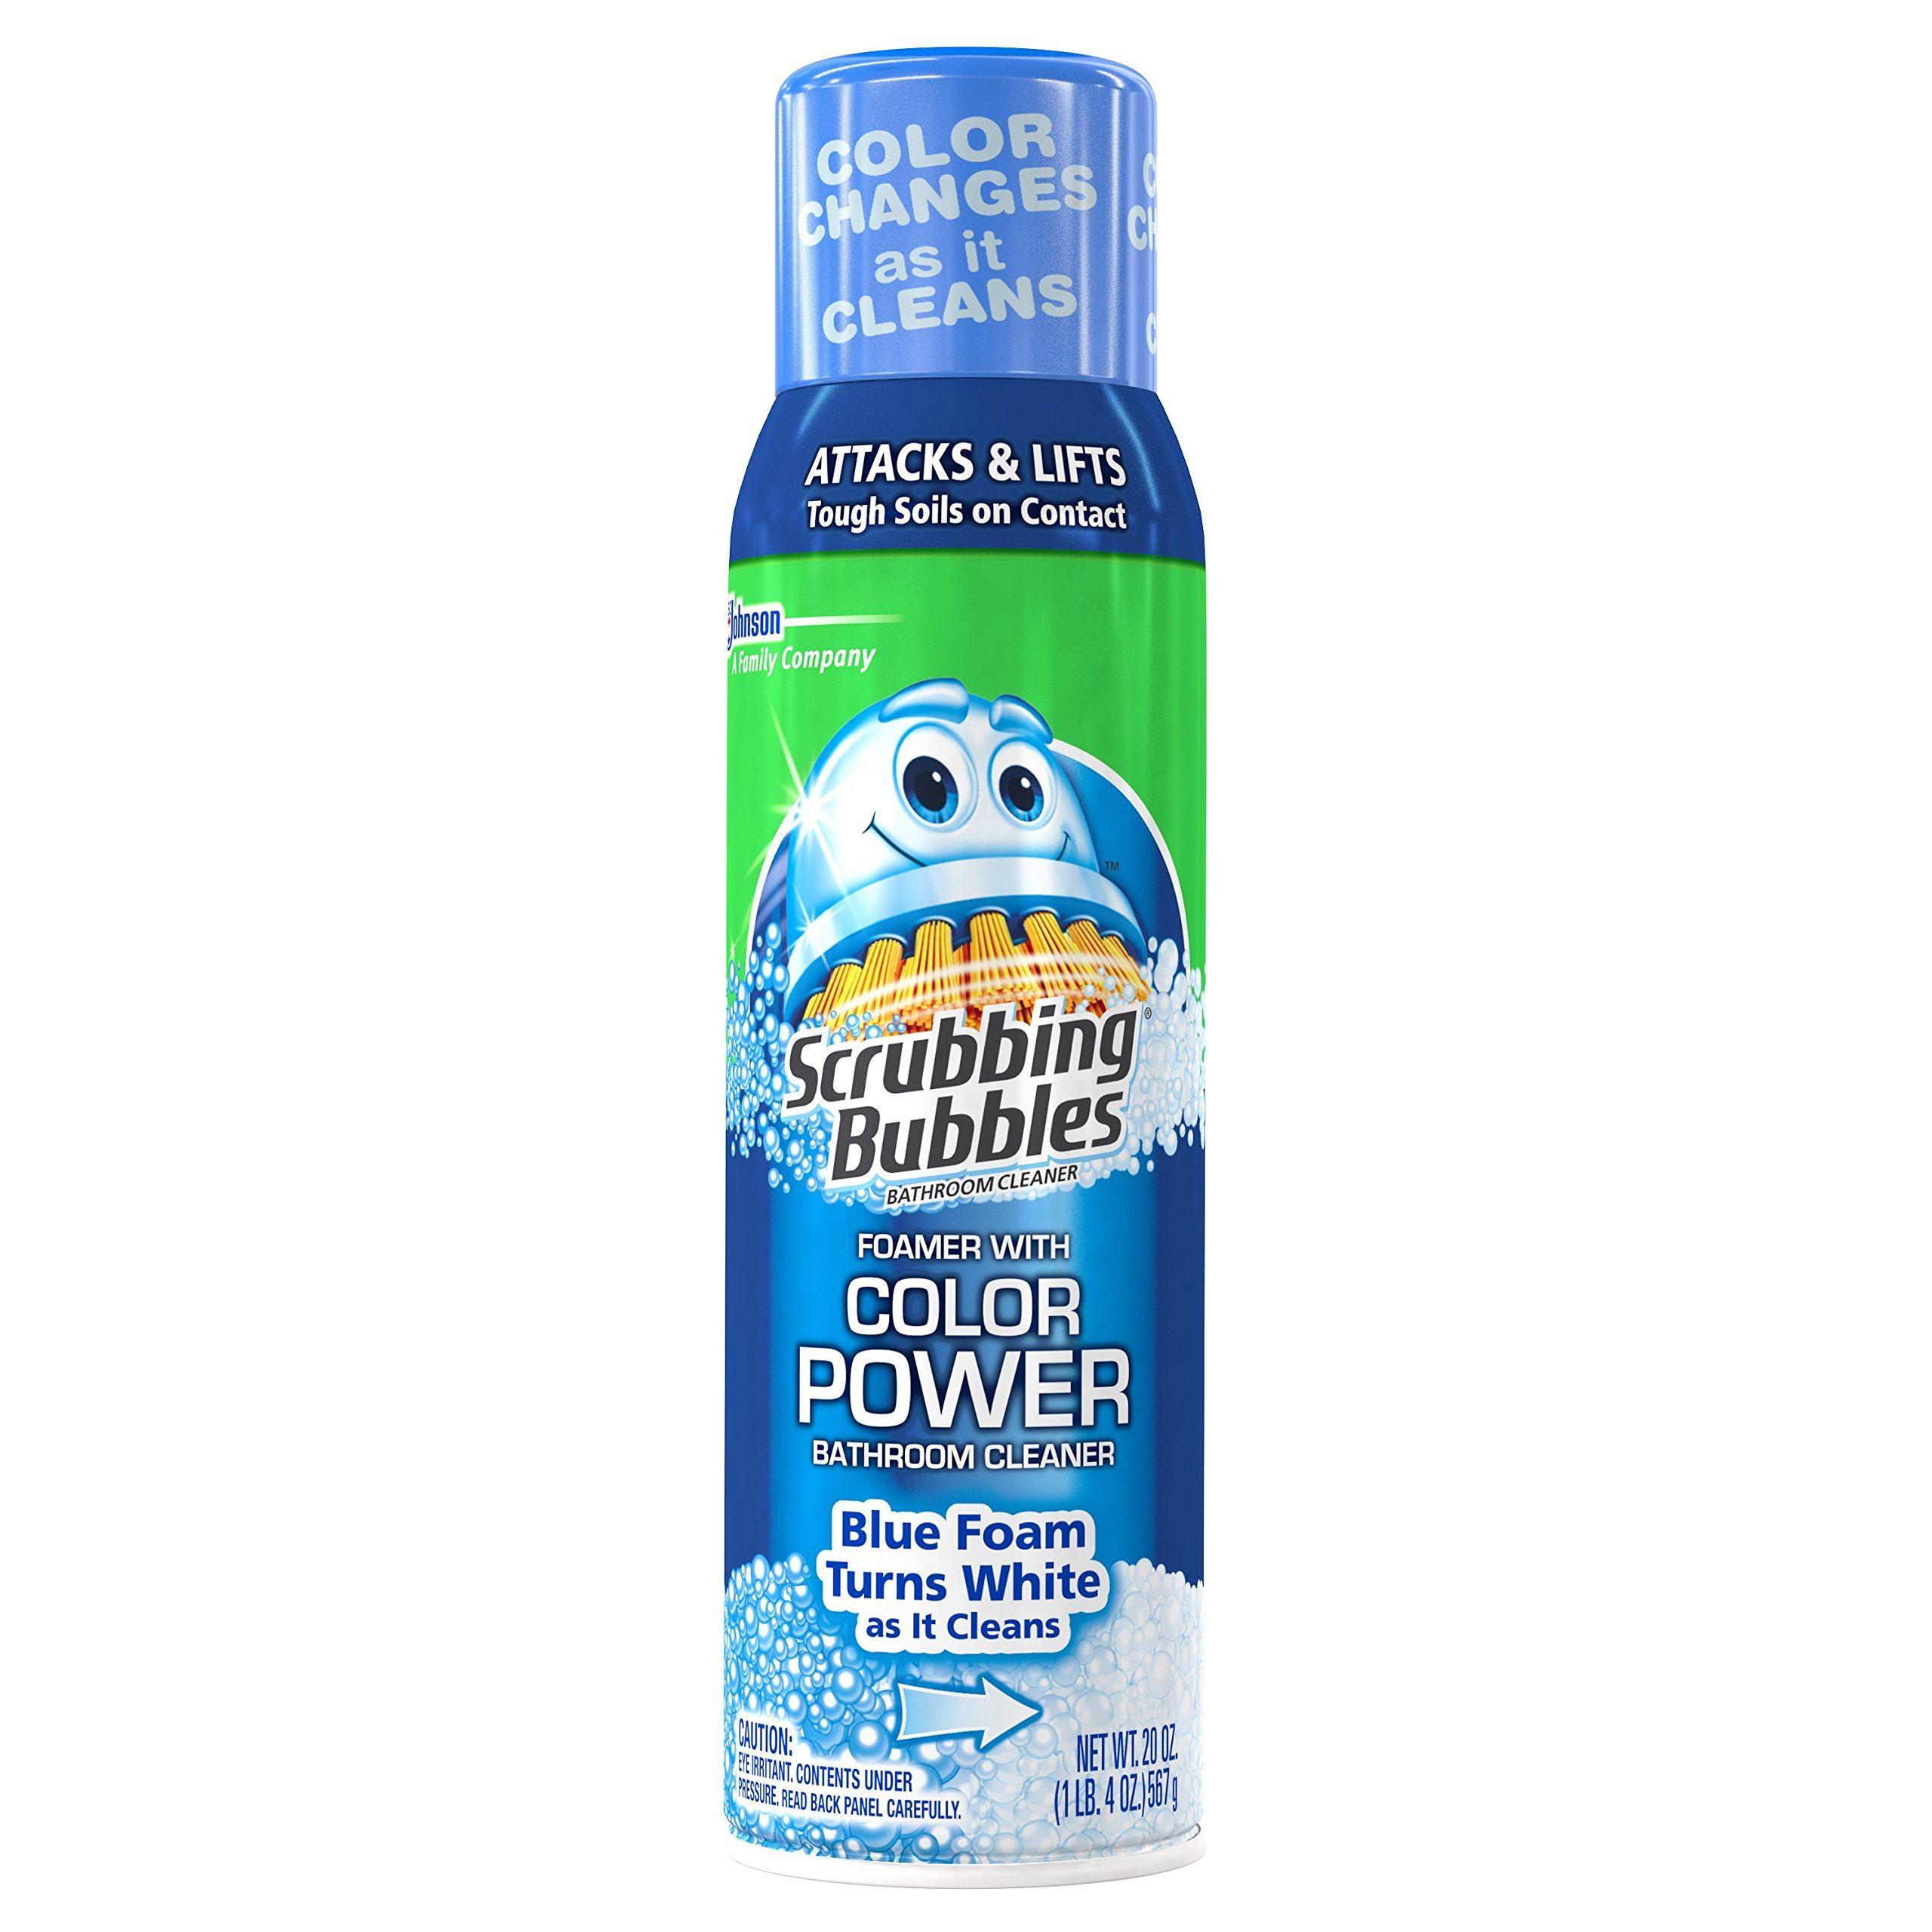 Scrubbing Bubbles Bathroom Cleaner Foamer with Color Power 20 oz (Pack of 2) by Scrubbing Bubbles